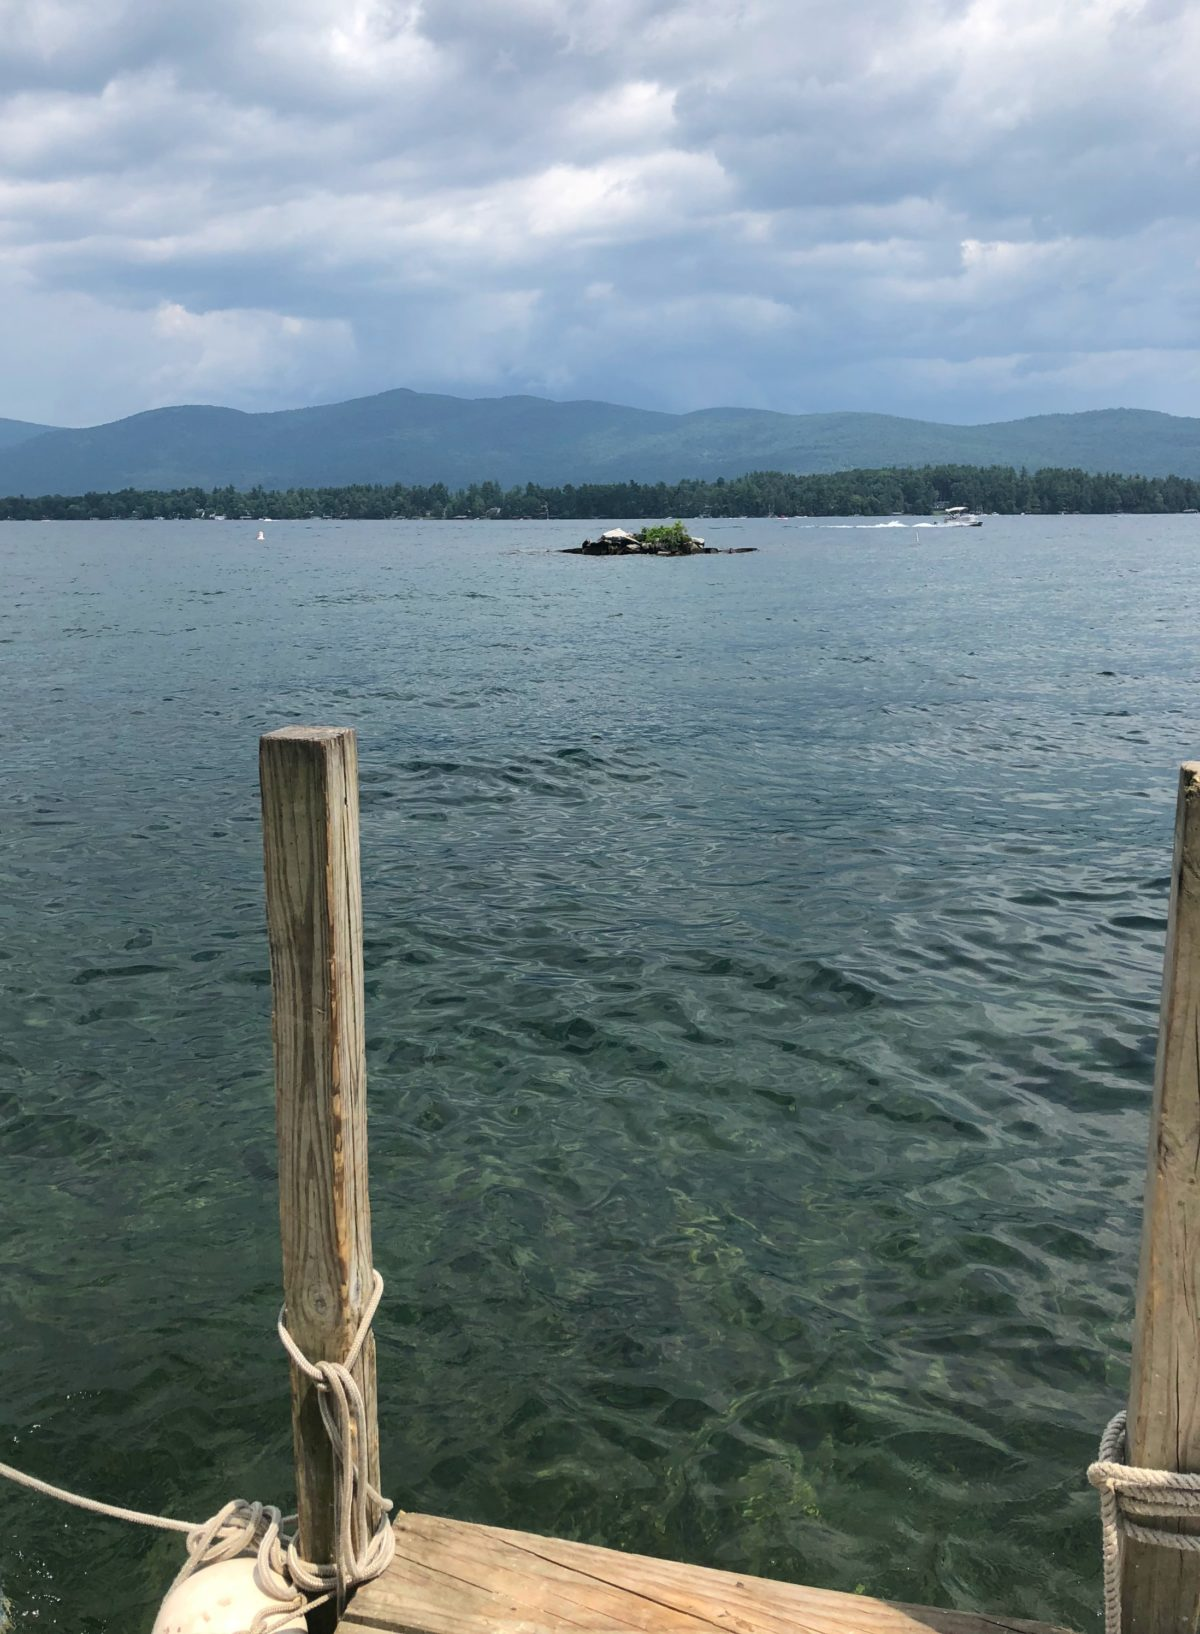 Diamond Island, Lake George, New York